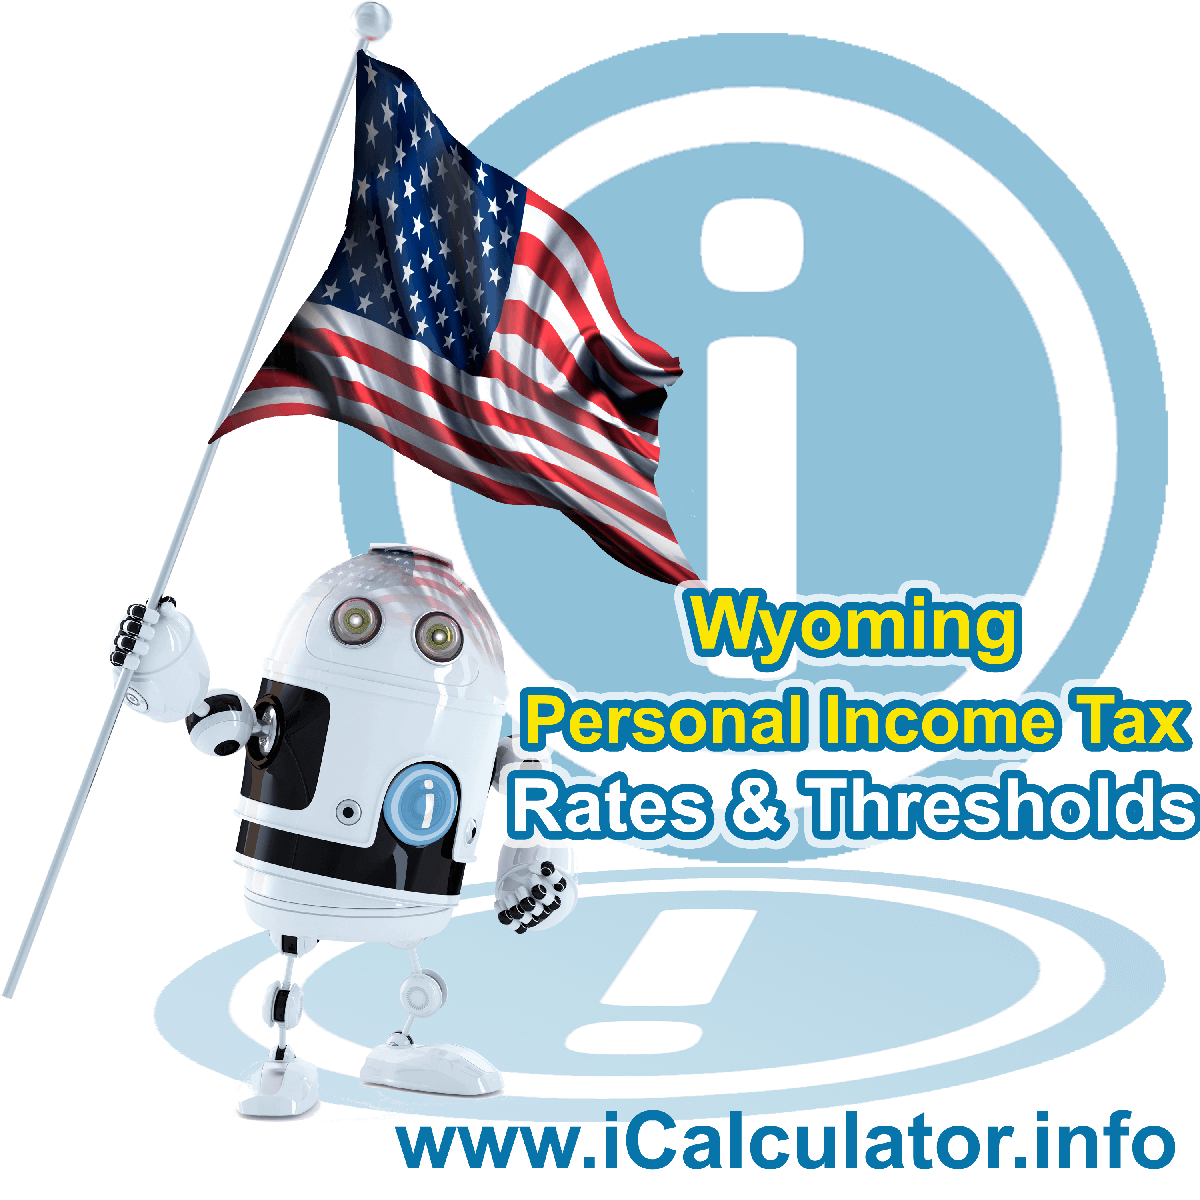 Wyoming State Tax Tables 2020. This image displays details of the Wyoming State Tax Tables for the 2020 tax return year which is provided in support of the 2020 US Tax Calculator